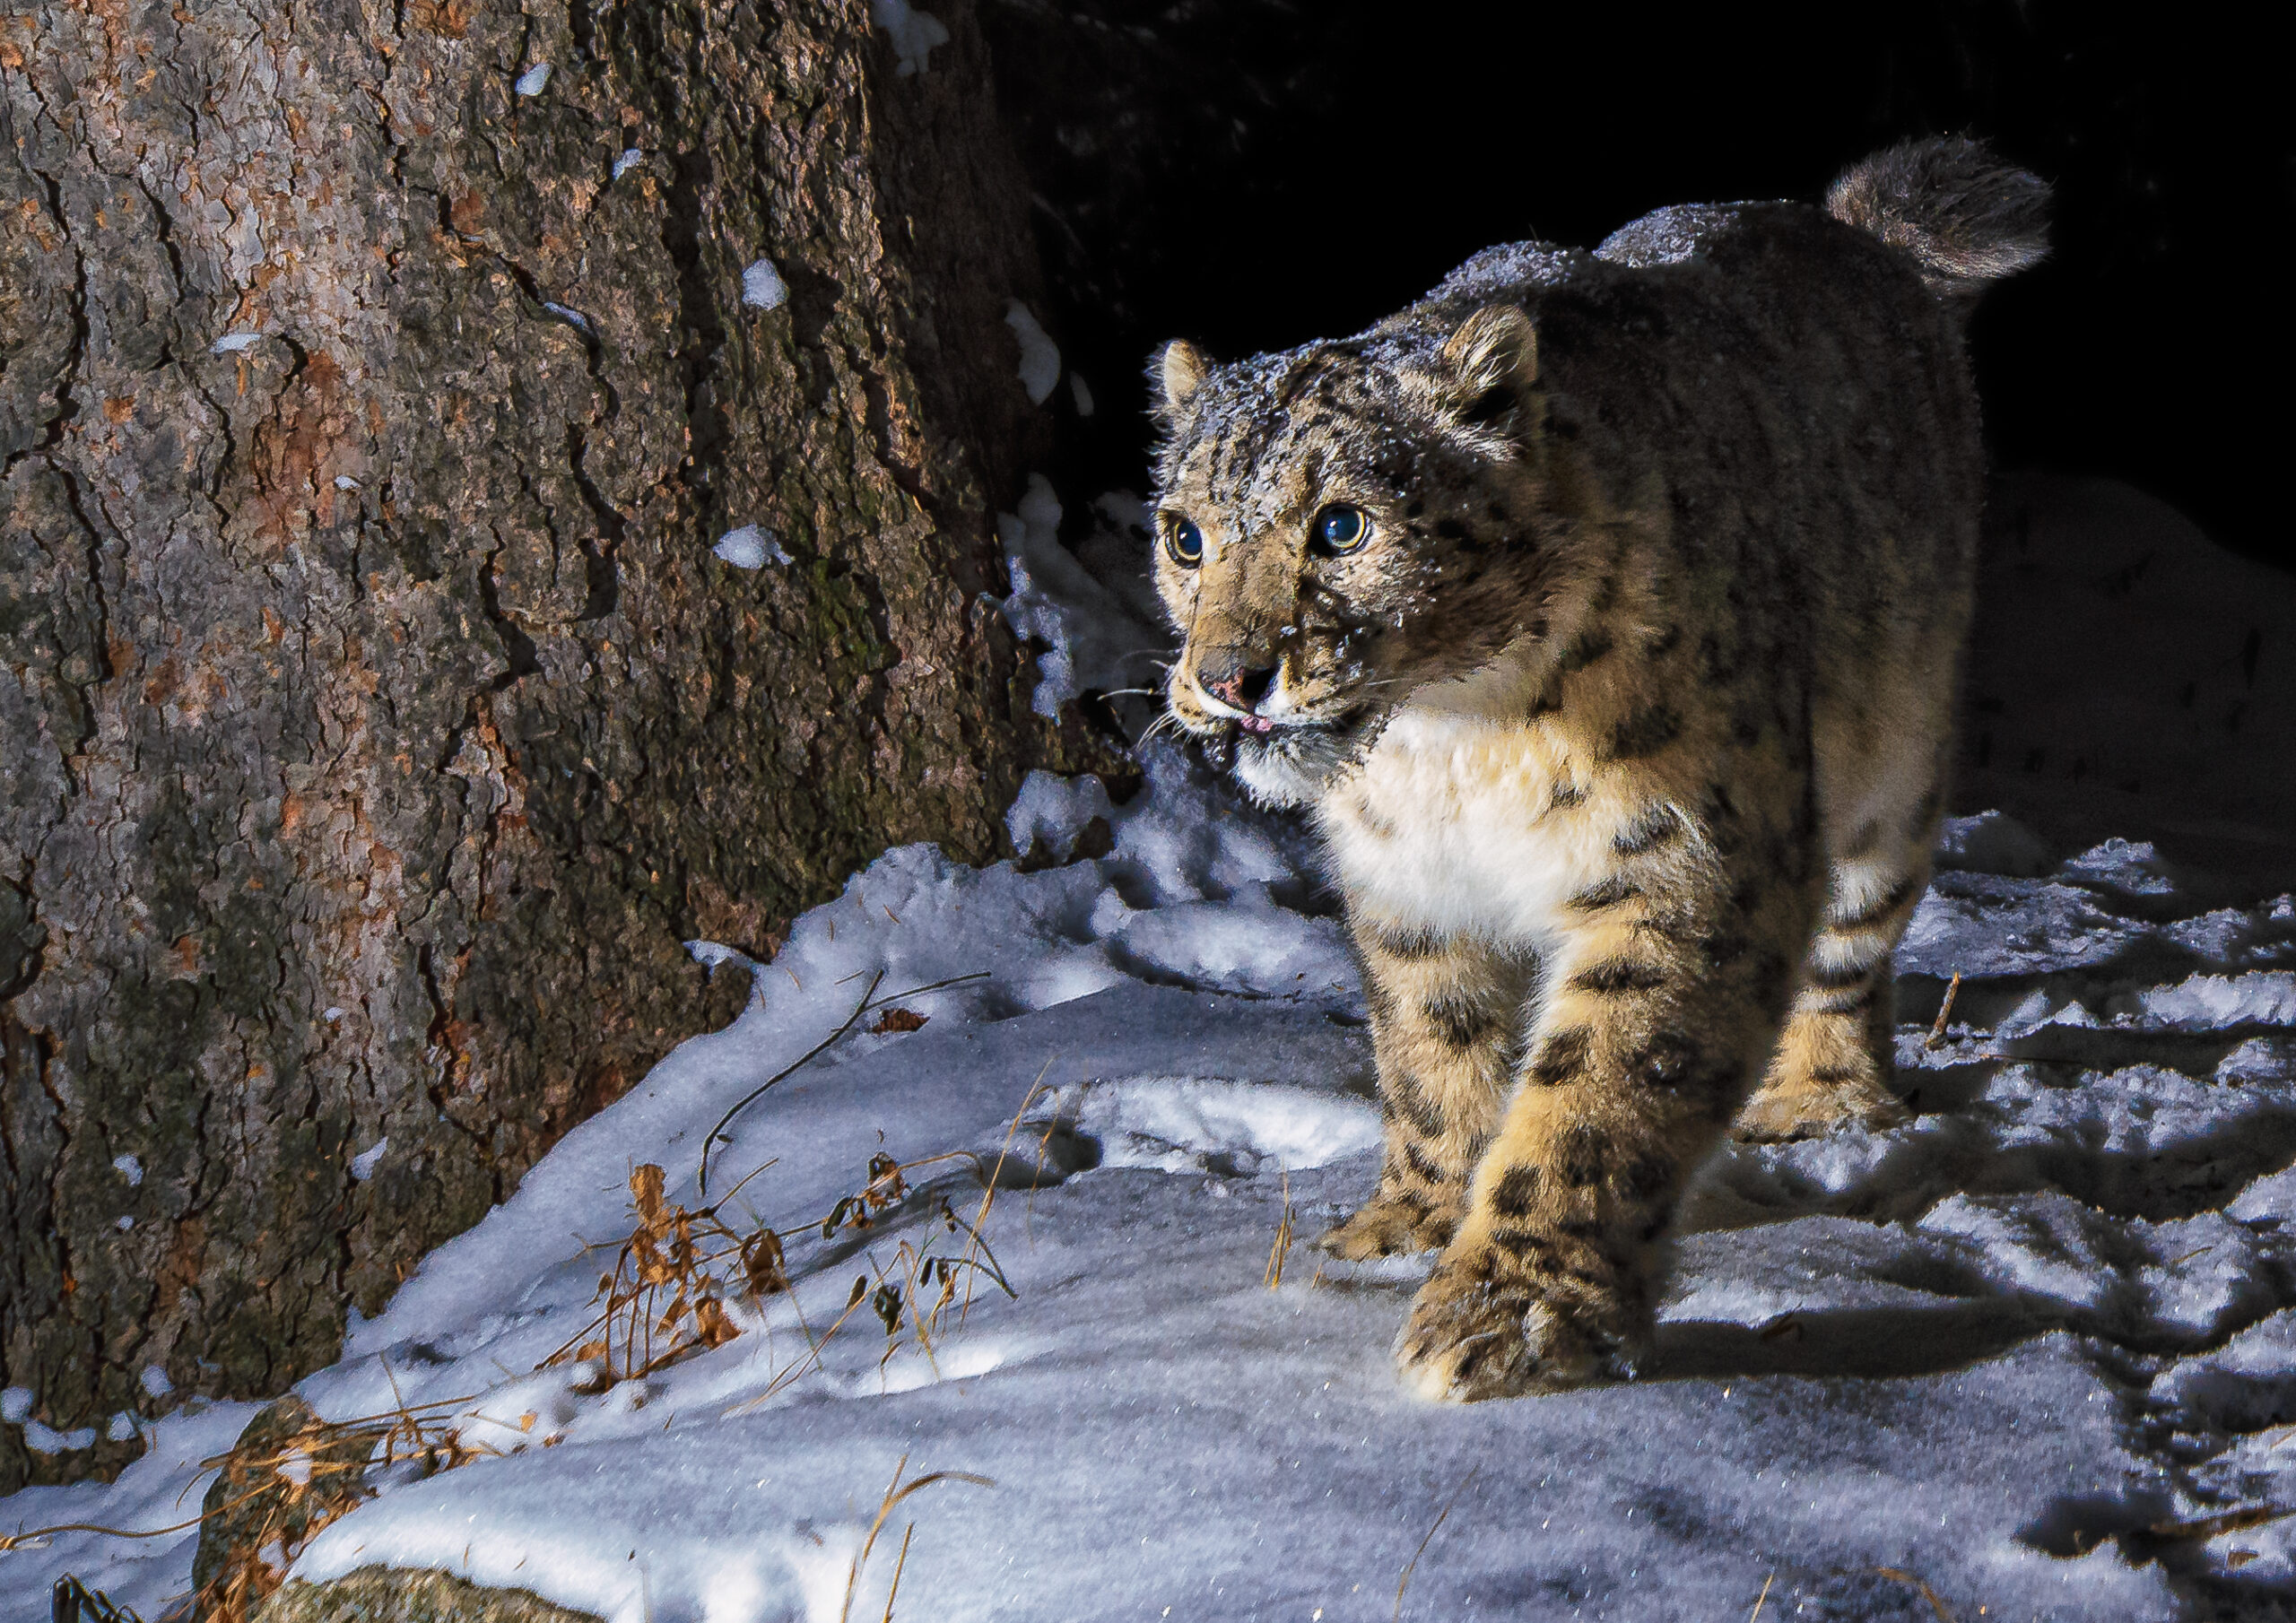 Snow leopard captured in the snow by a camera trap